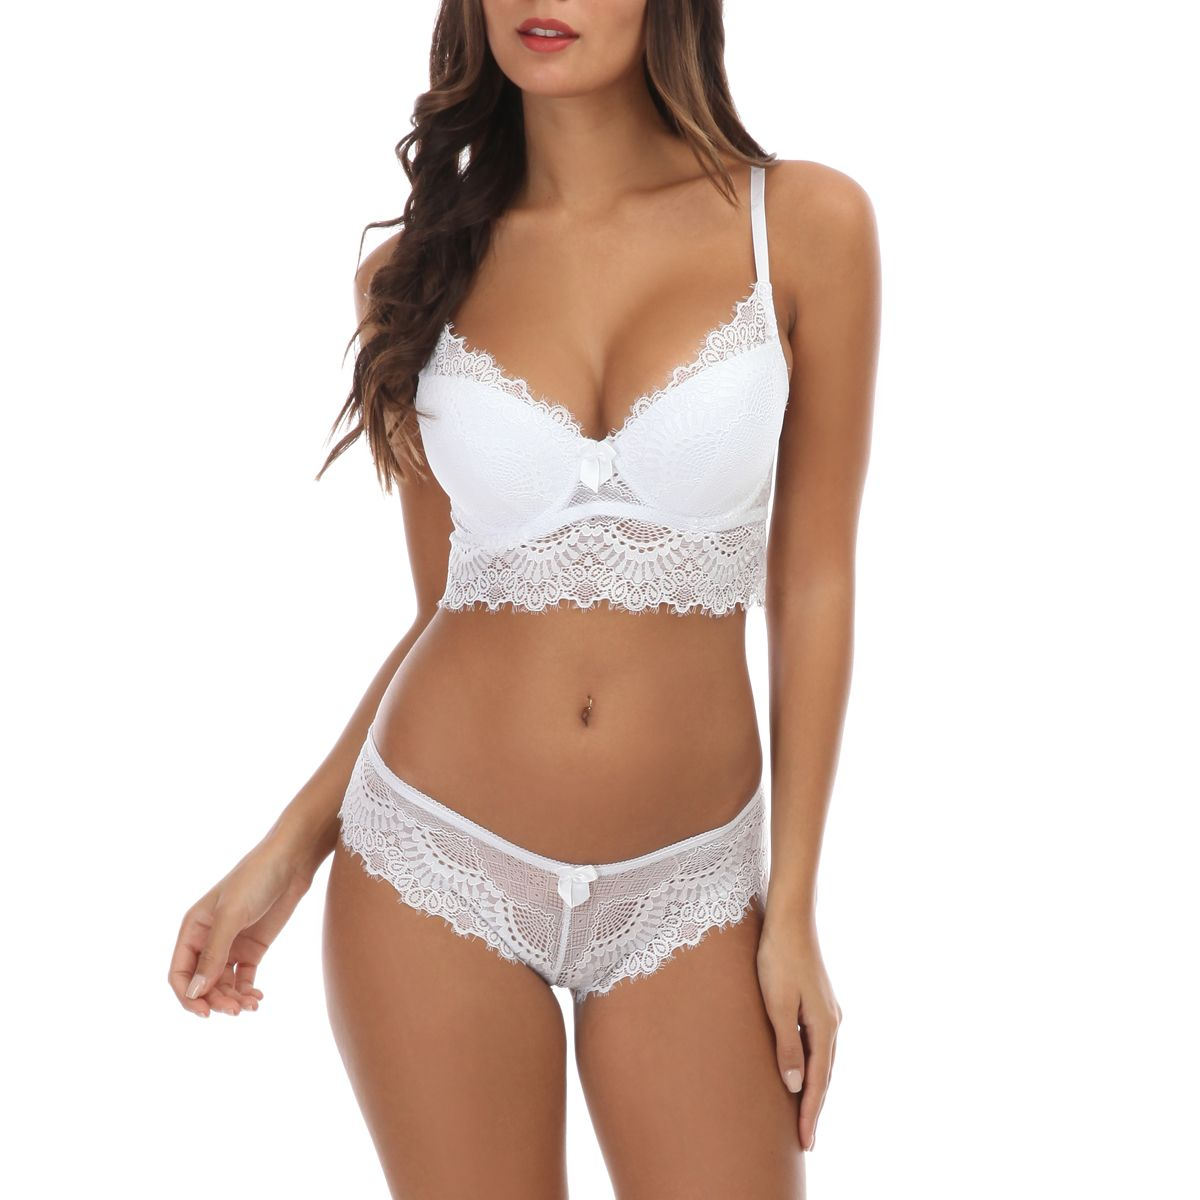 Ensemble blanc push-up bralette et culotte en dentelle